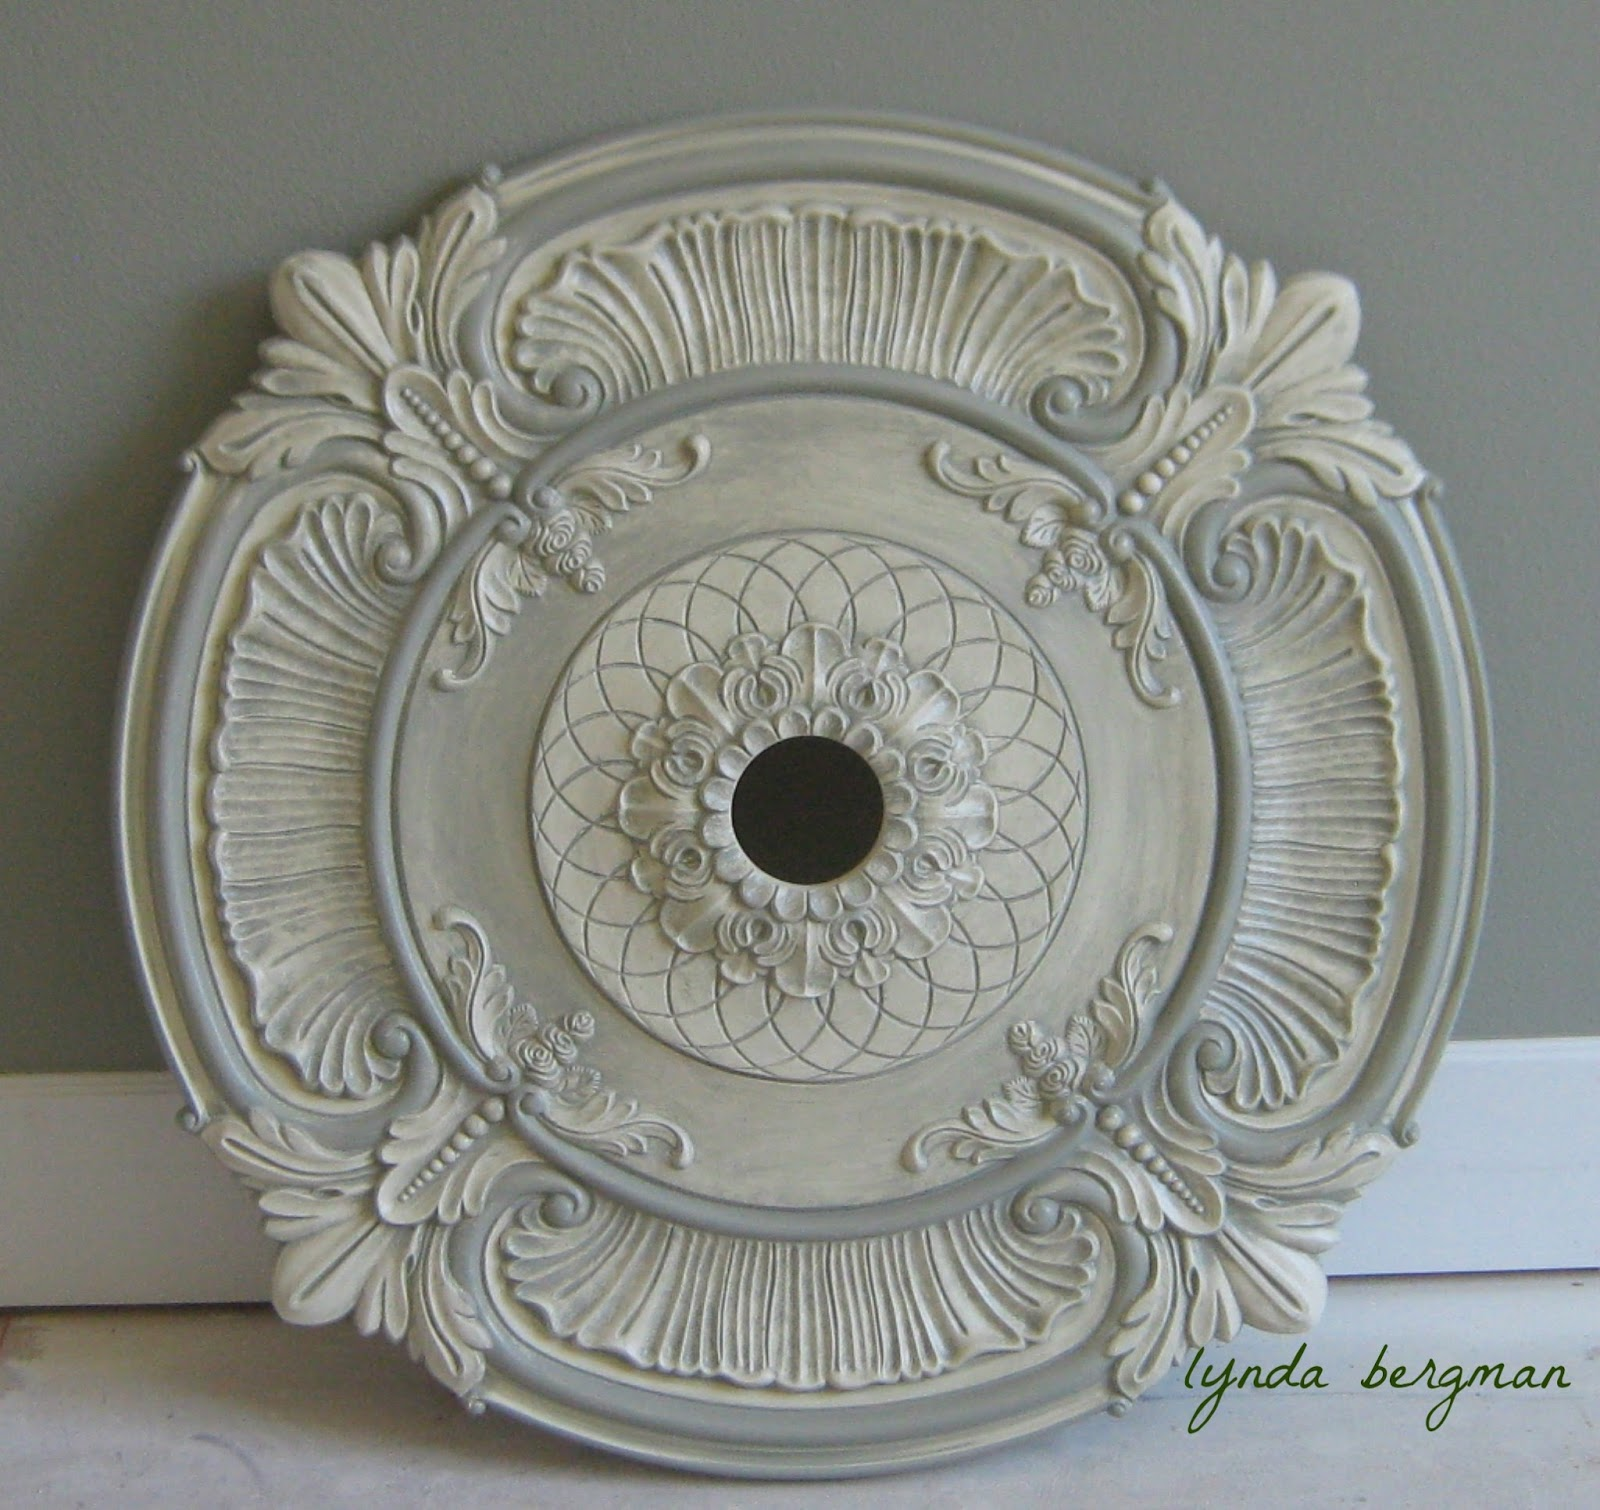 They Got This Beautiful Large Ceiling Medallion For The Dining Room And Said Maybe I Could Paint It To Match Cabinets Nearby